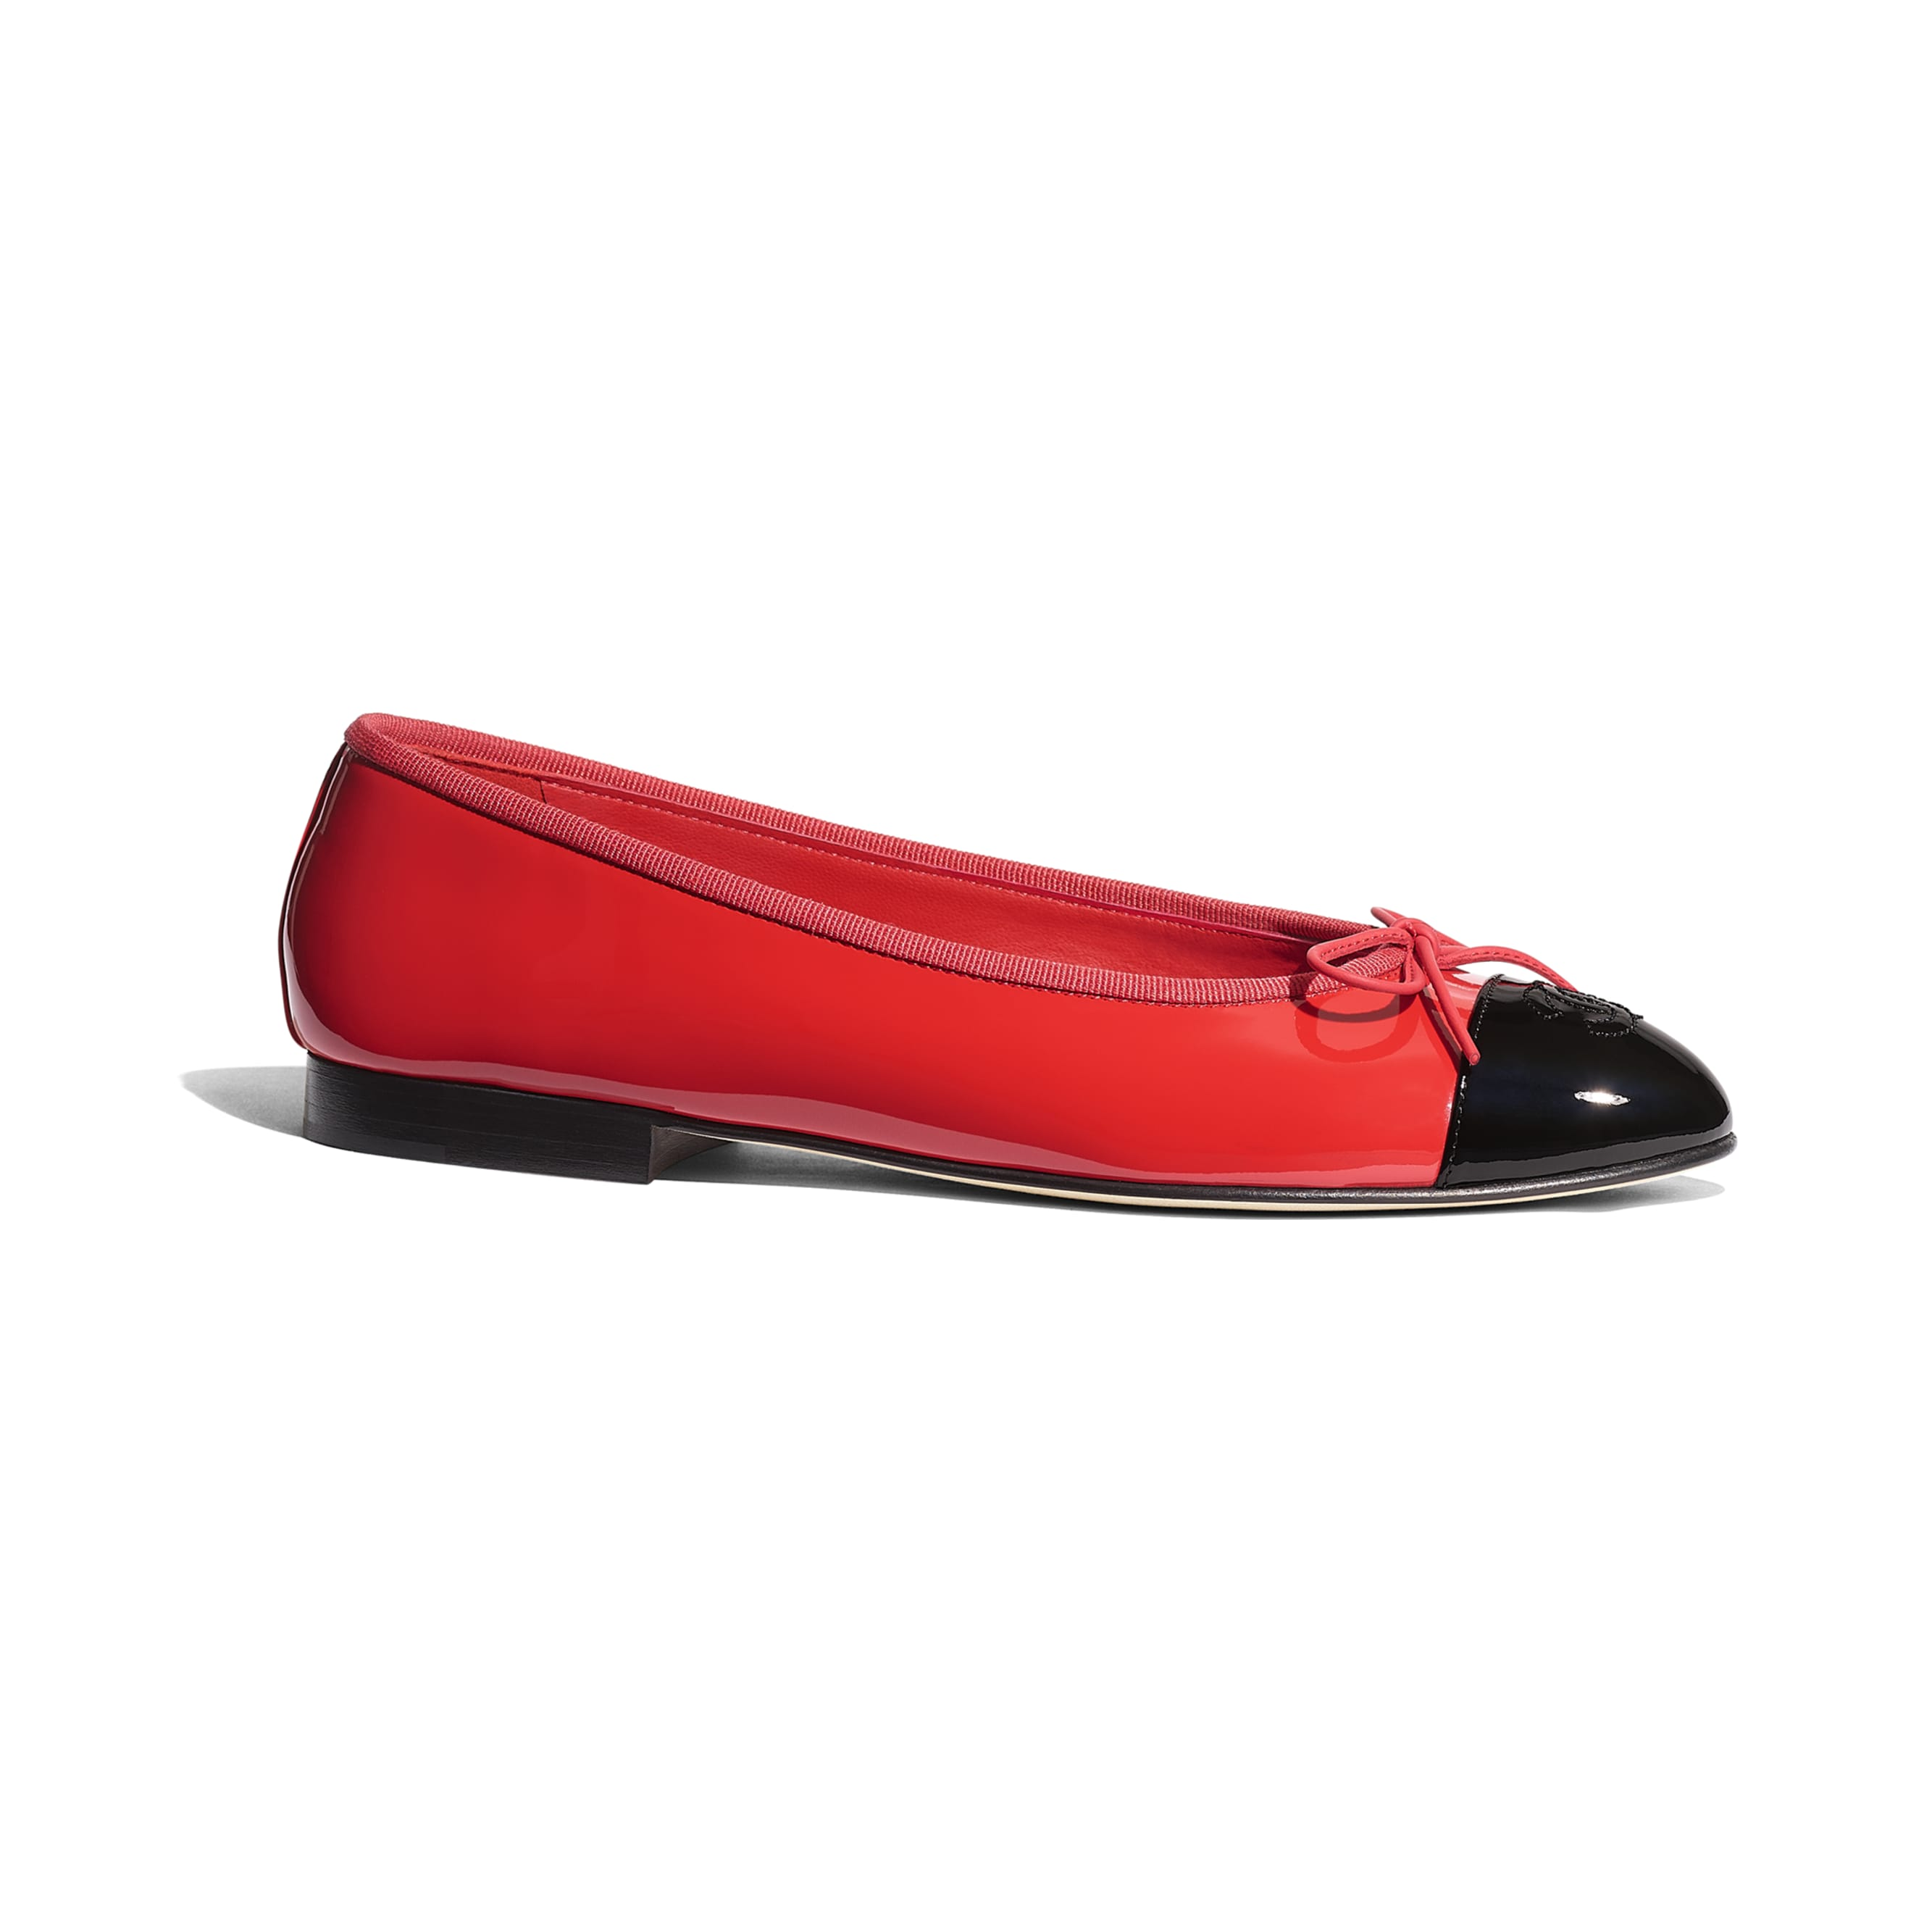 Flats - Red & Black - Patent Calfskin - Default view - see standard sized version